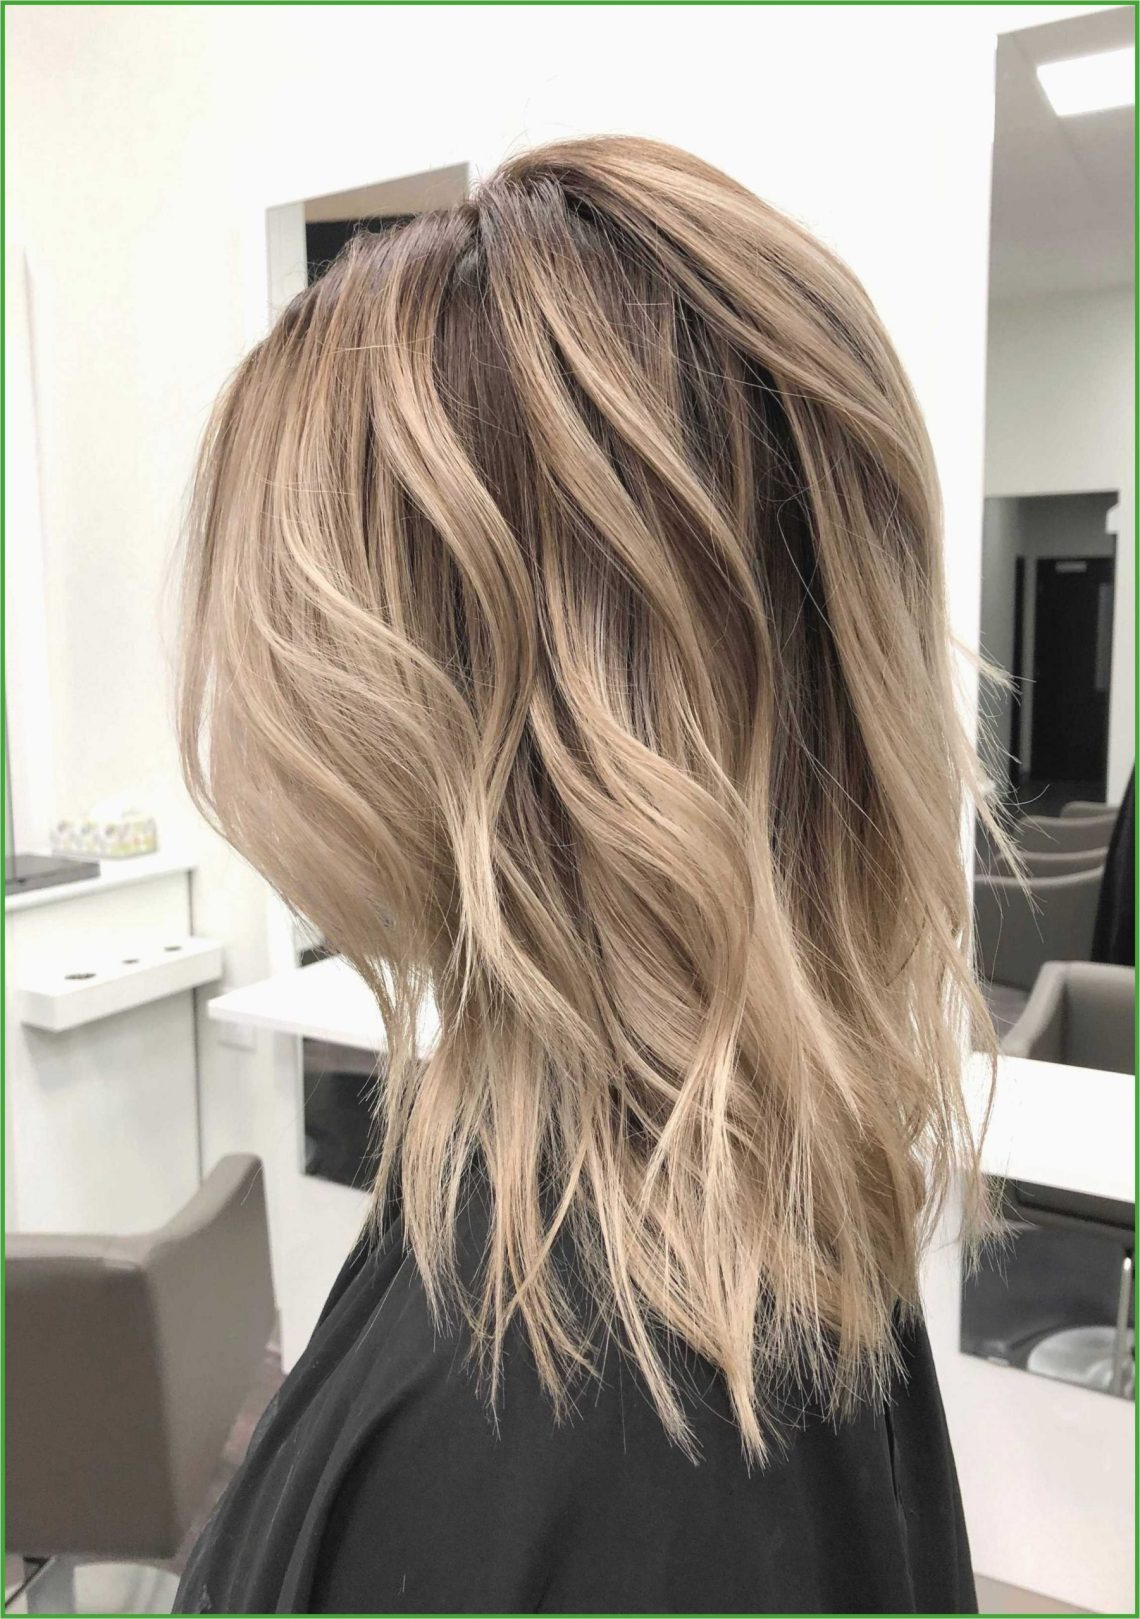 Blonde Hairstyles Medium Length Awesome Shoulder Length Blonde Hairstyles For Medium Length Hair